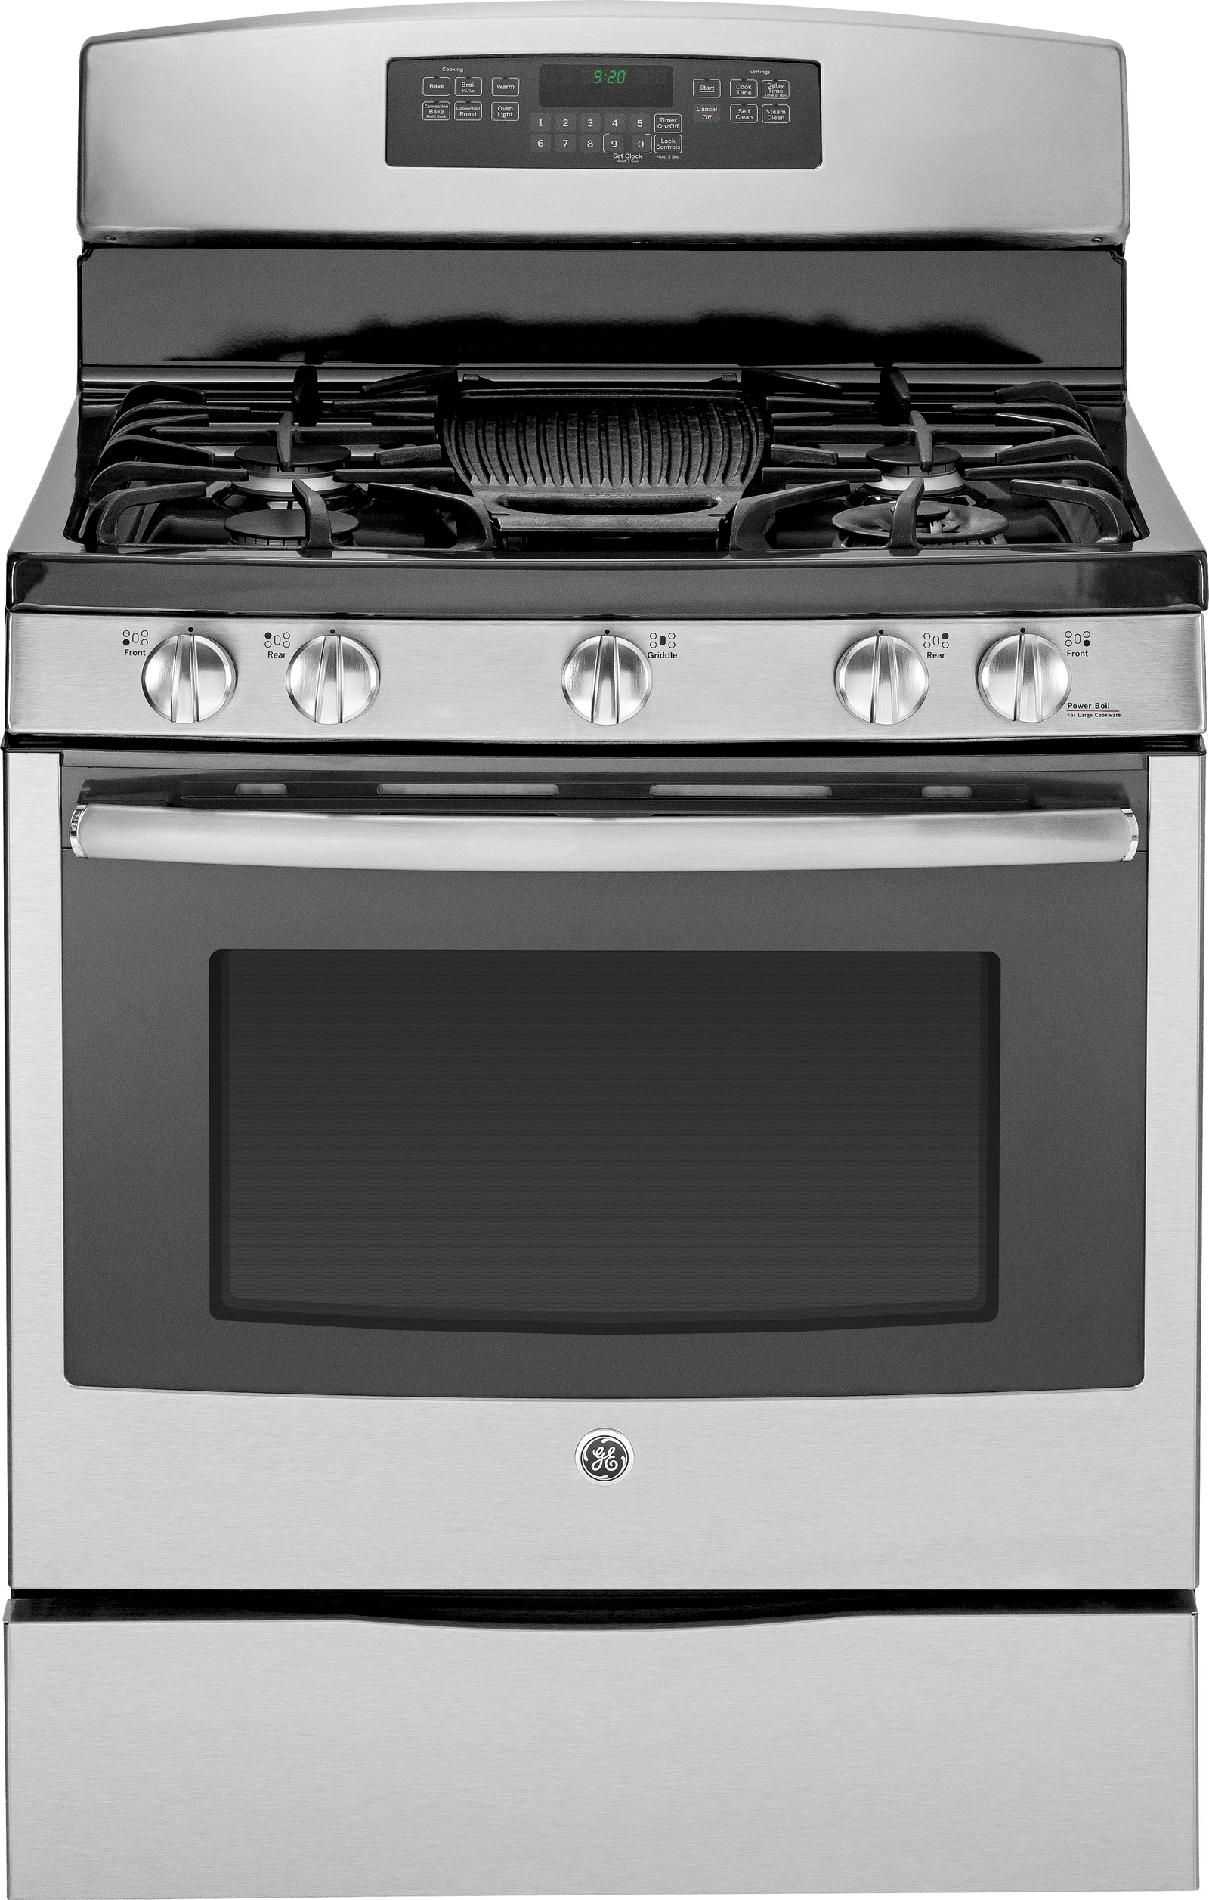 GE Profile 5.6 cu. ft. Gas Range w/ Convection - Stainless Steel